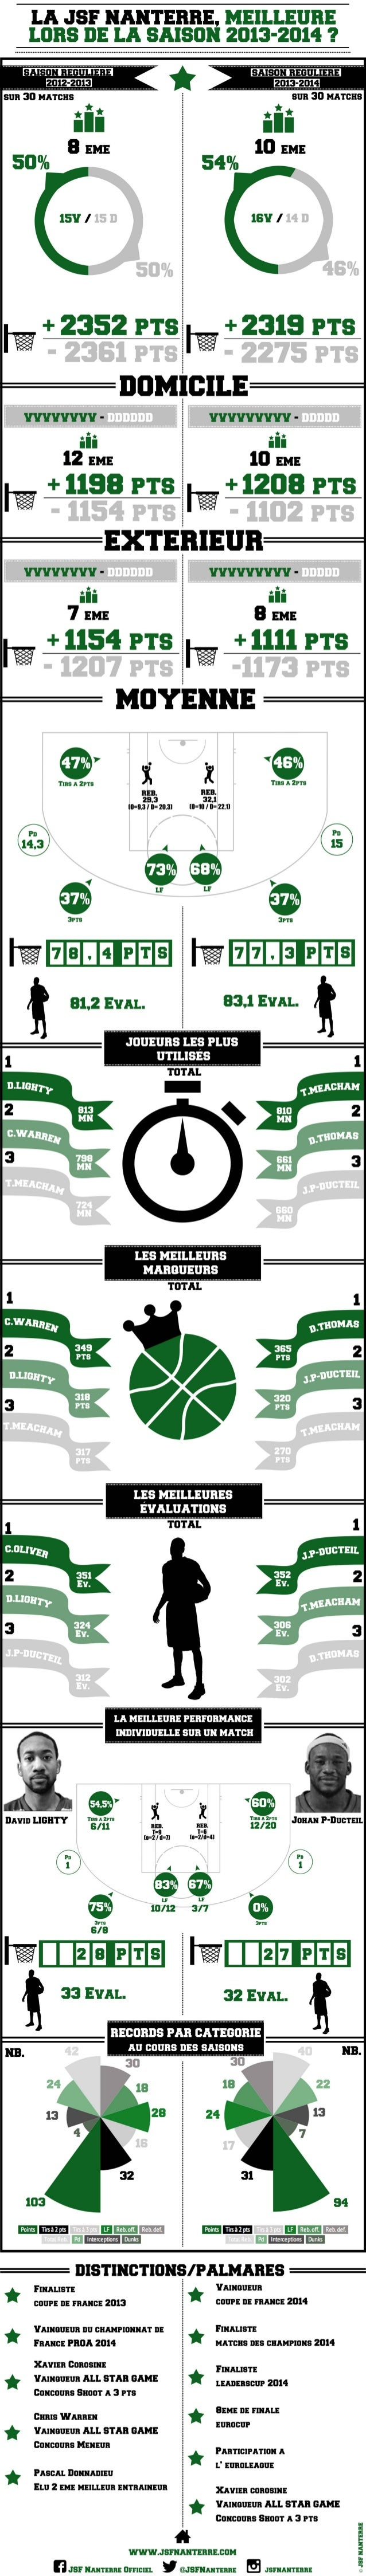 Infographie JSF Nanterre 2014